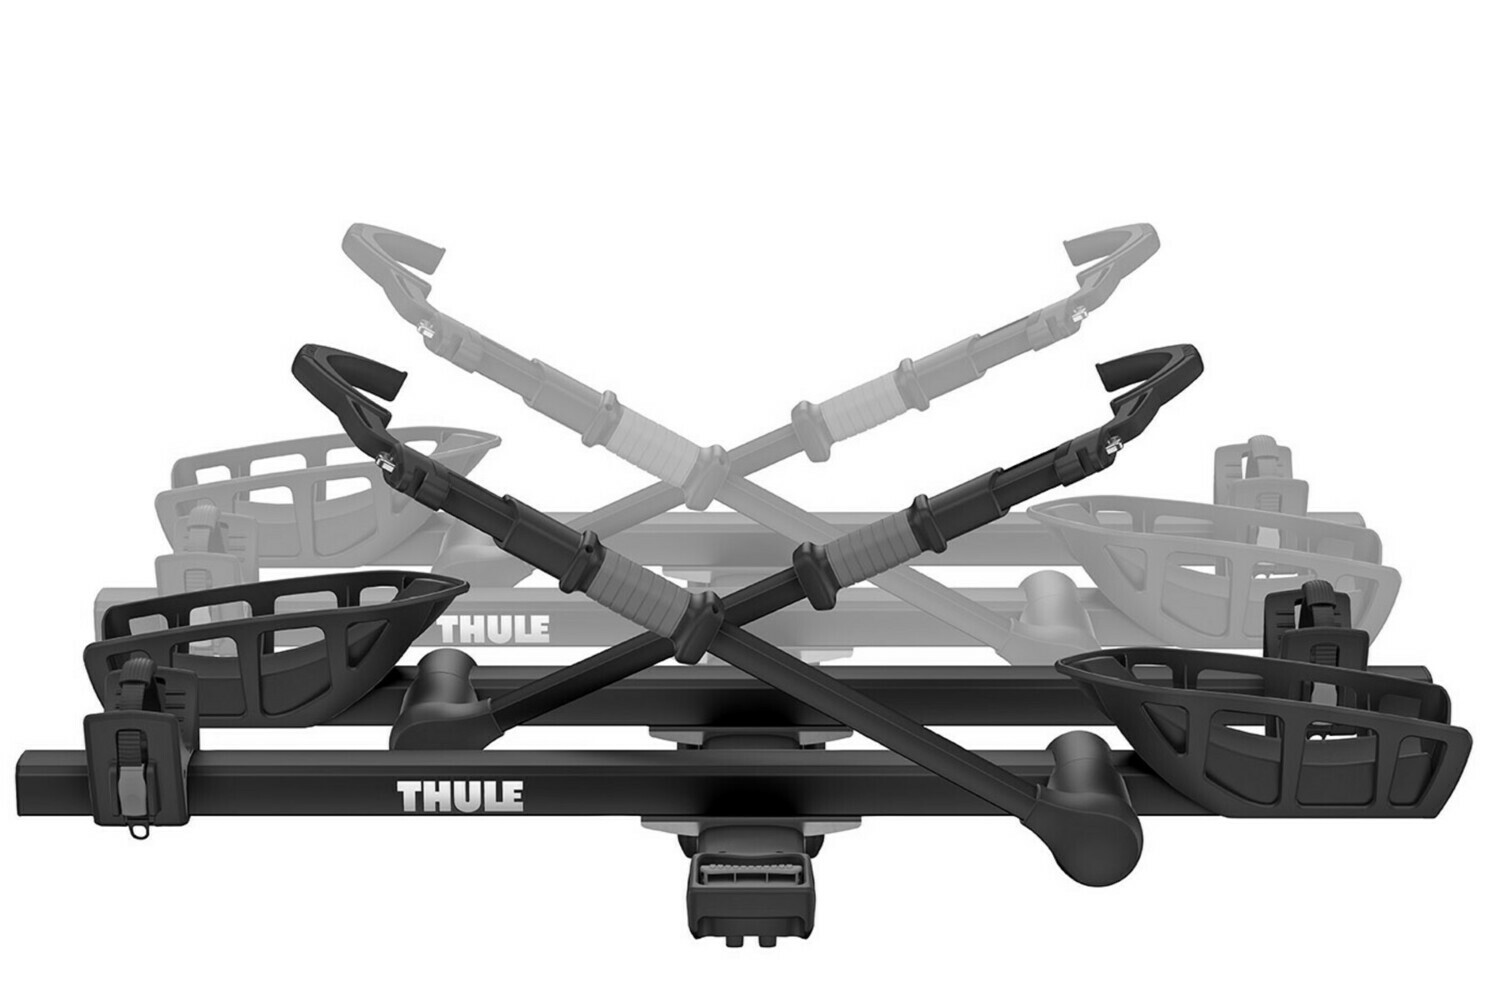 Thule T2 Pro XT Bike Rack Add-On - Black